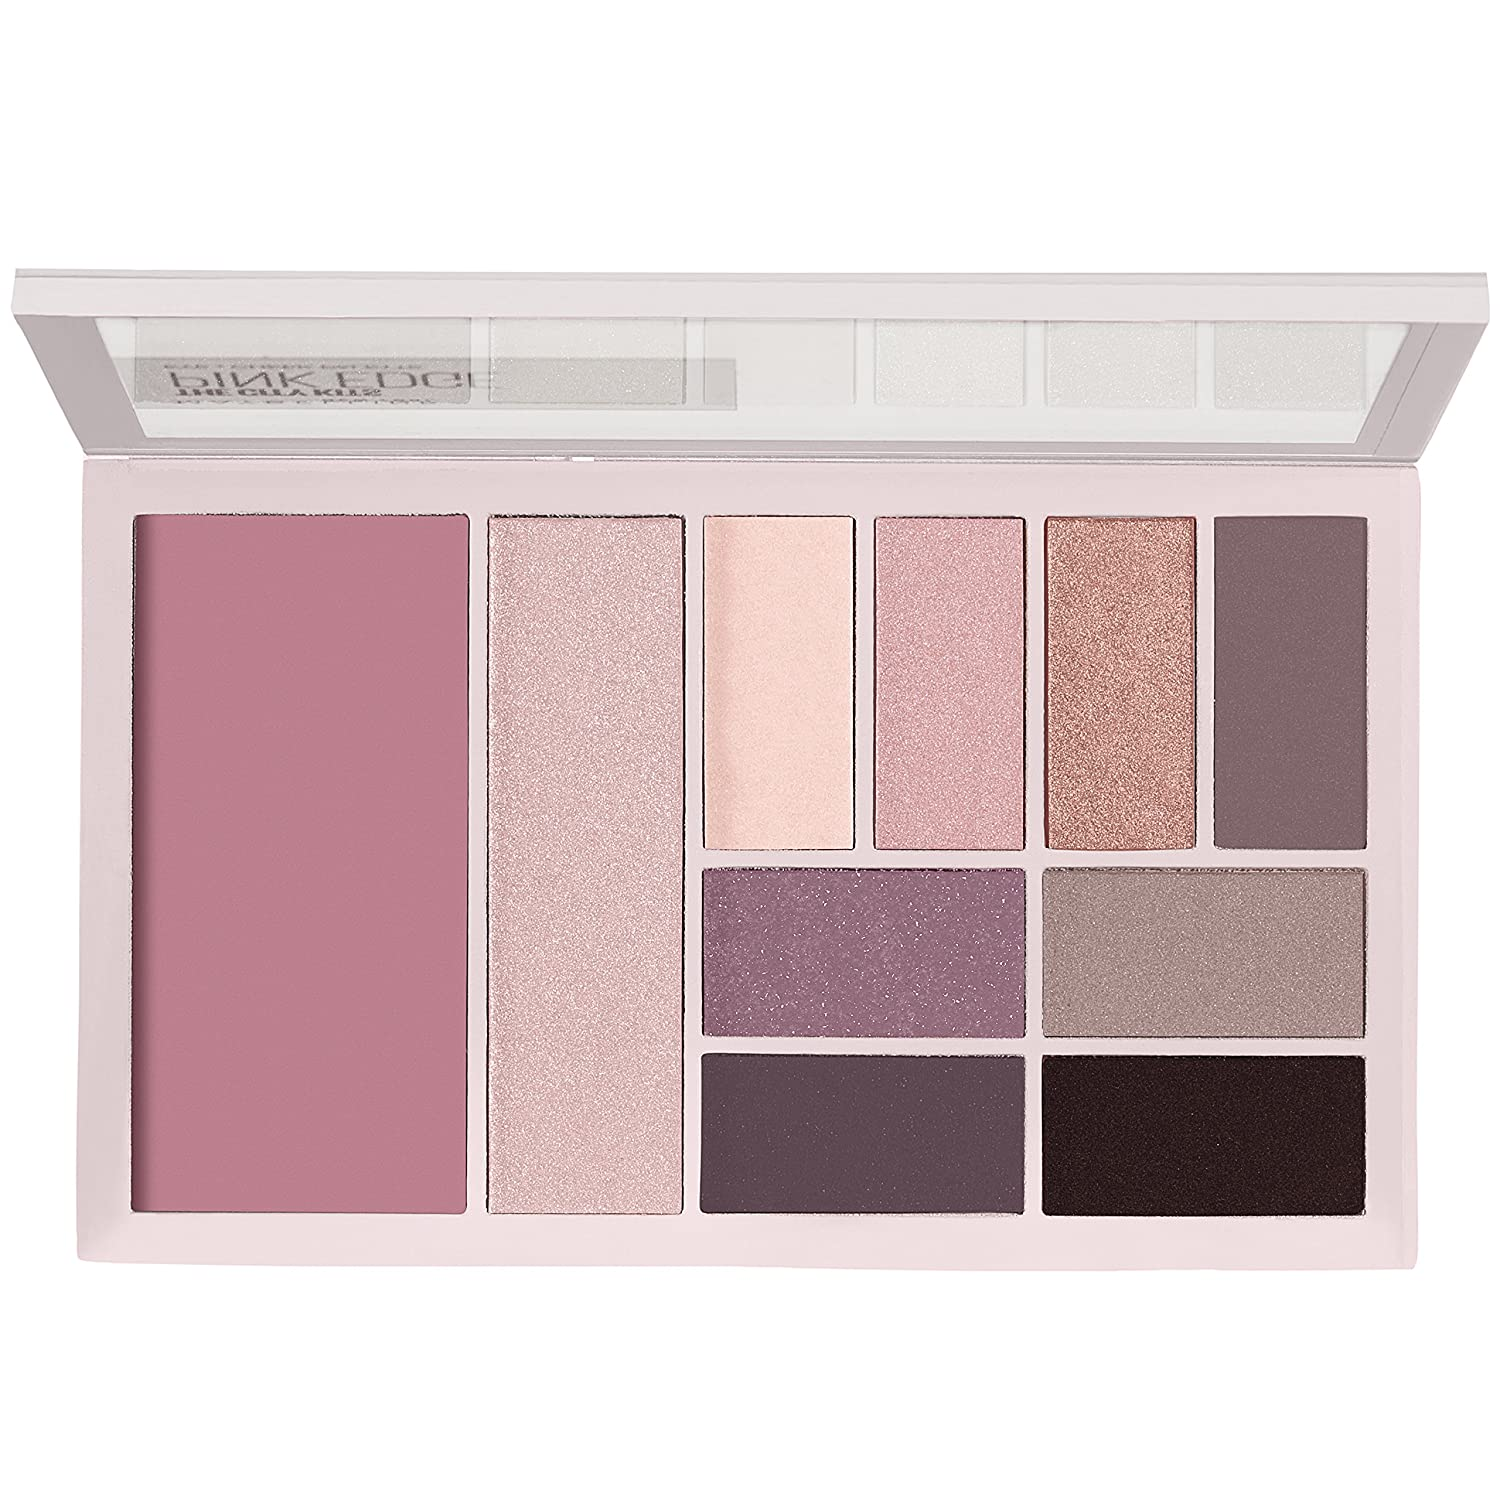 Maybelline New York The City Kits All-in-One Eye & Cheek Palette, Pink Edge, 0.42 oz. K2735600